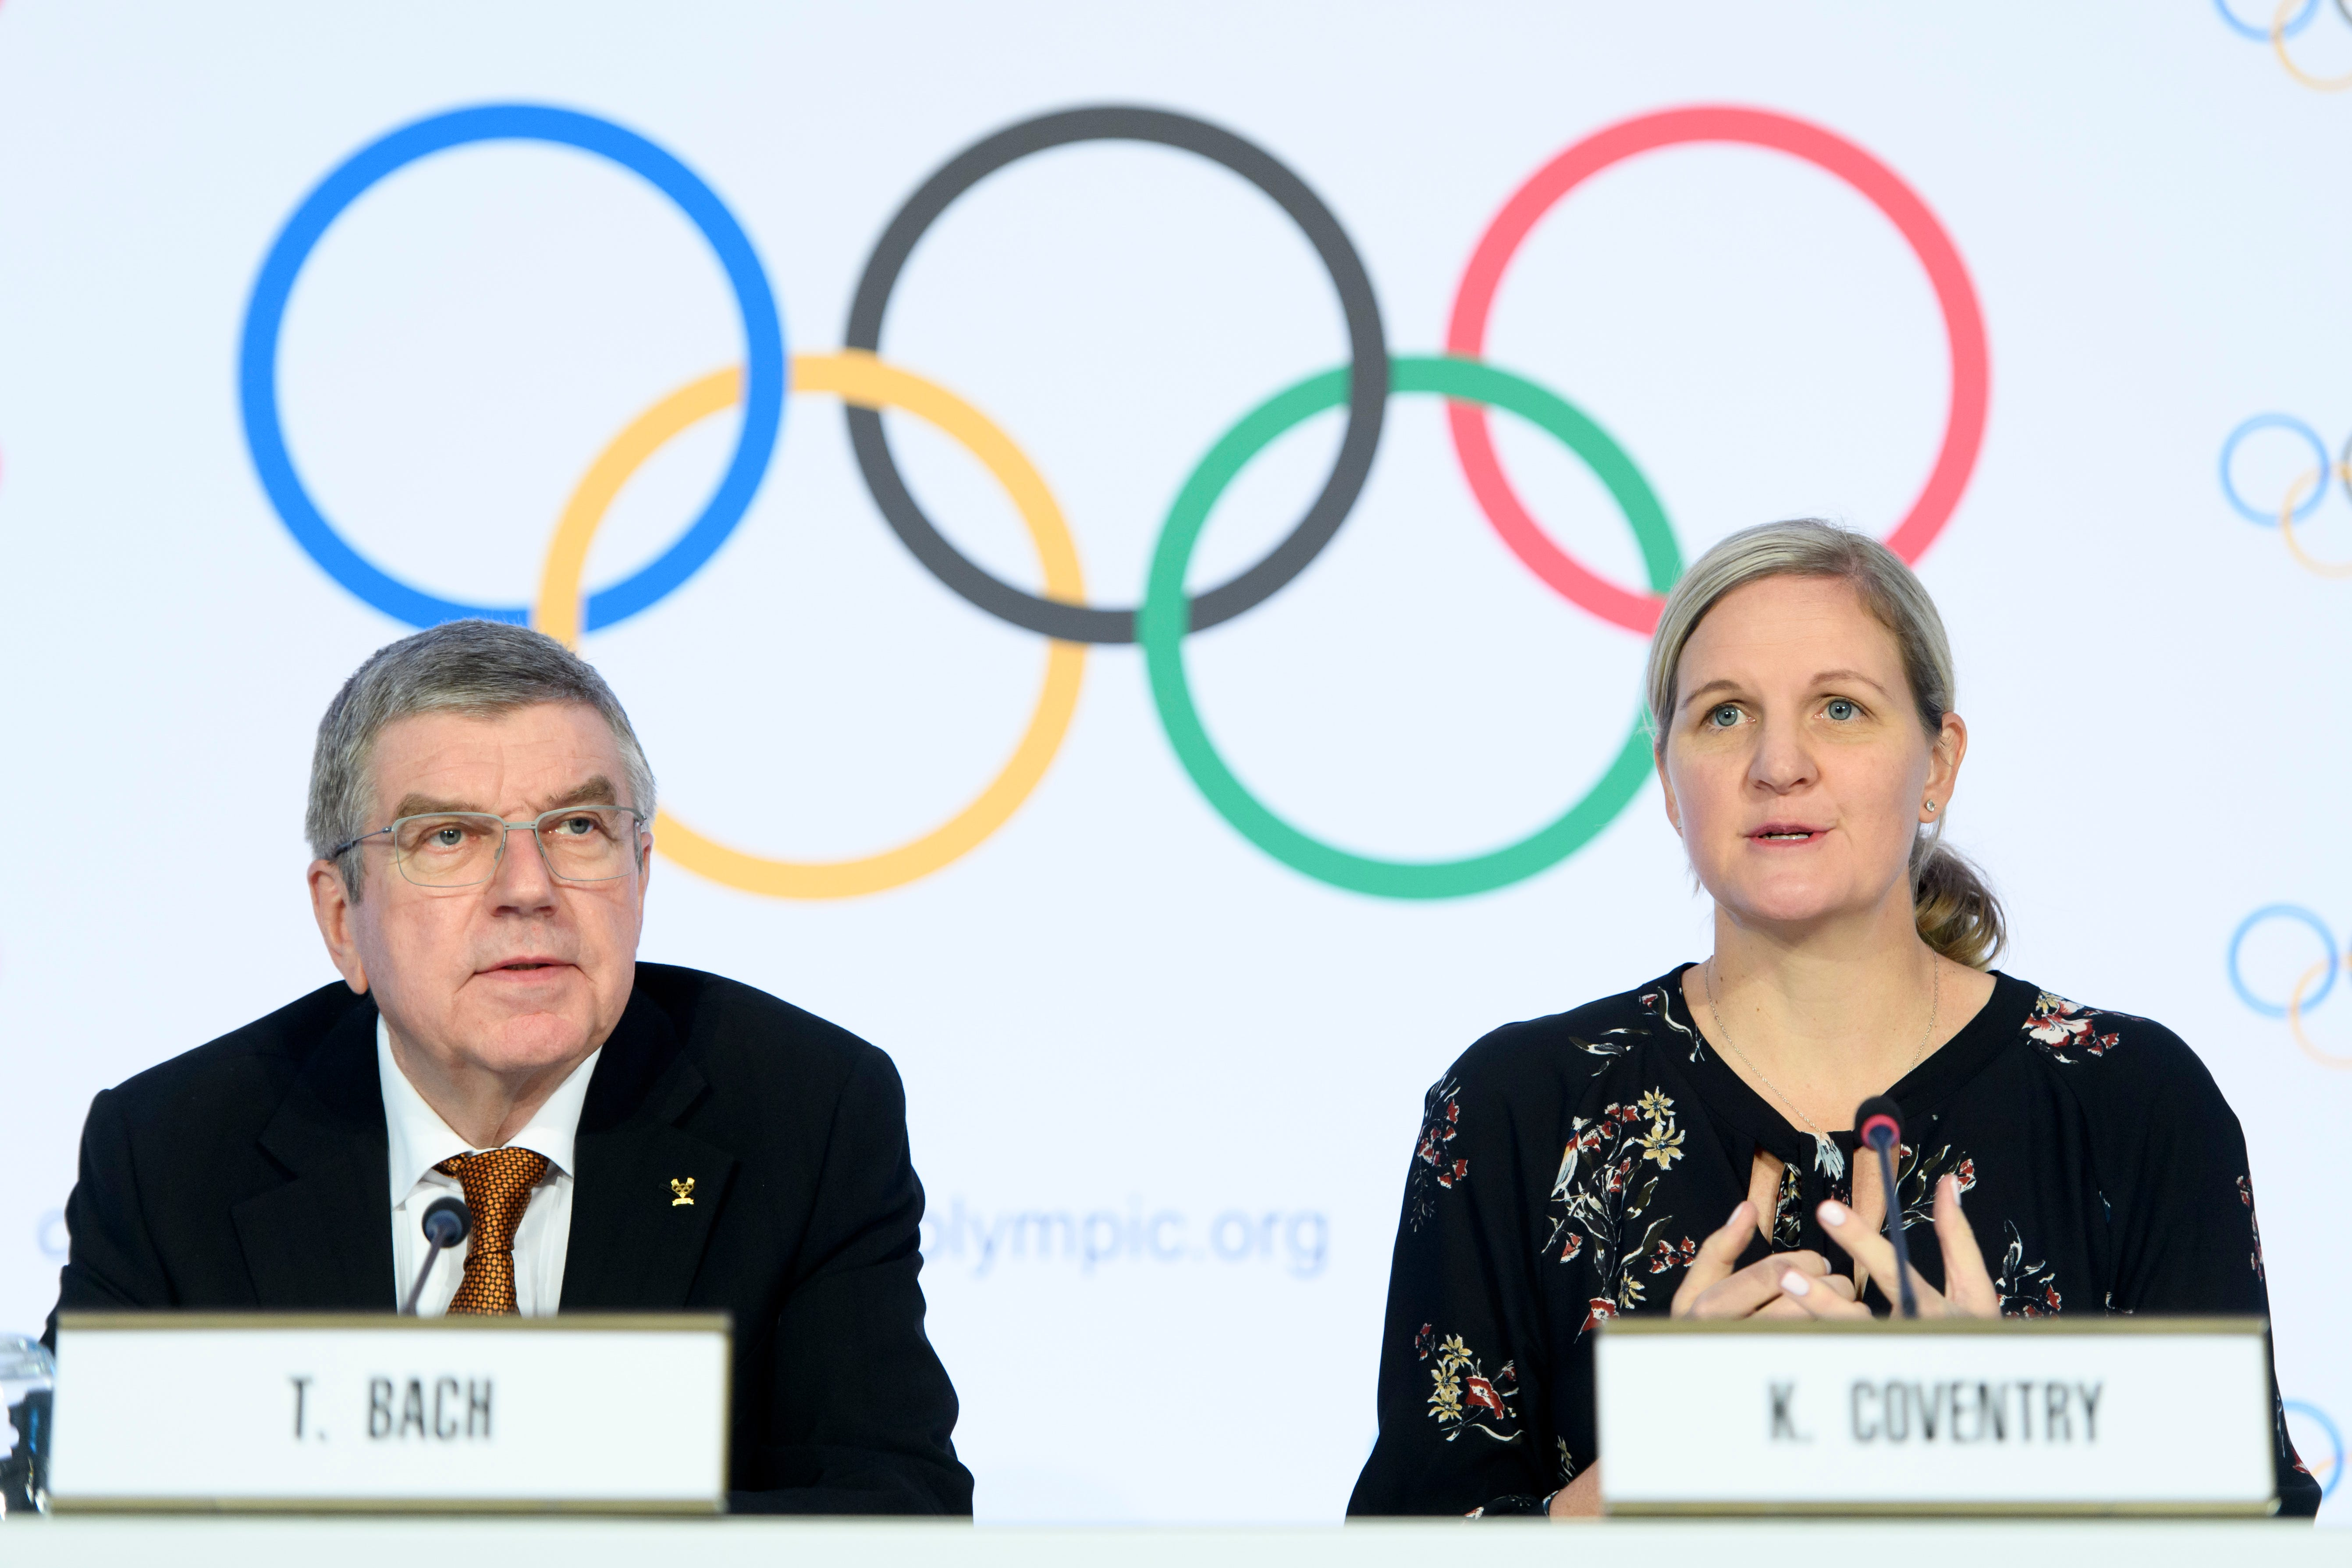 IOC: No kneeling or any form of political protest allowed at Tokyo Olympics